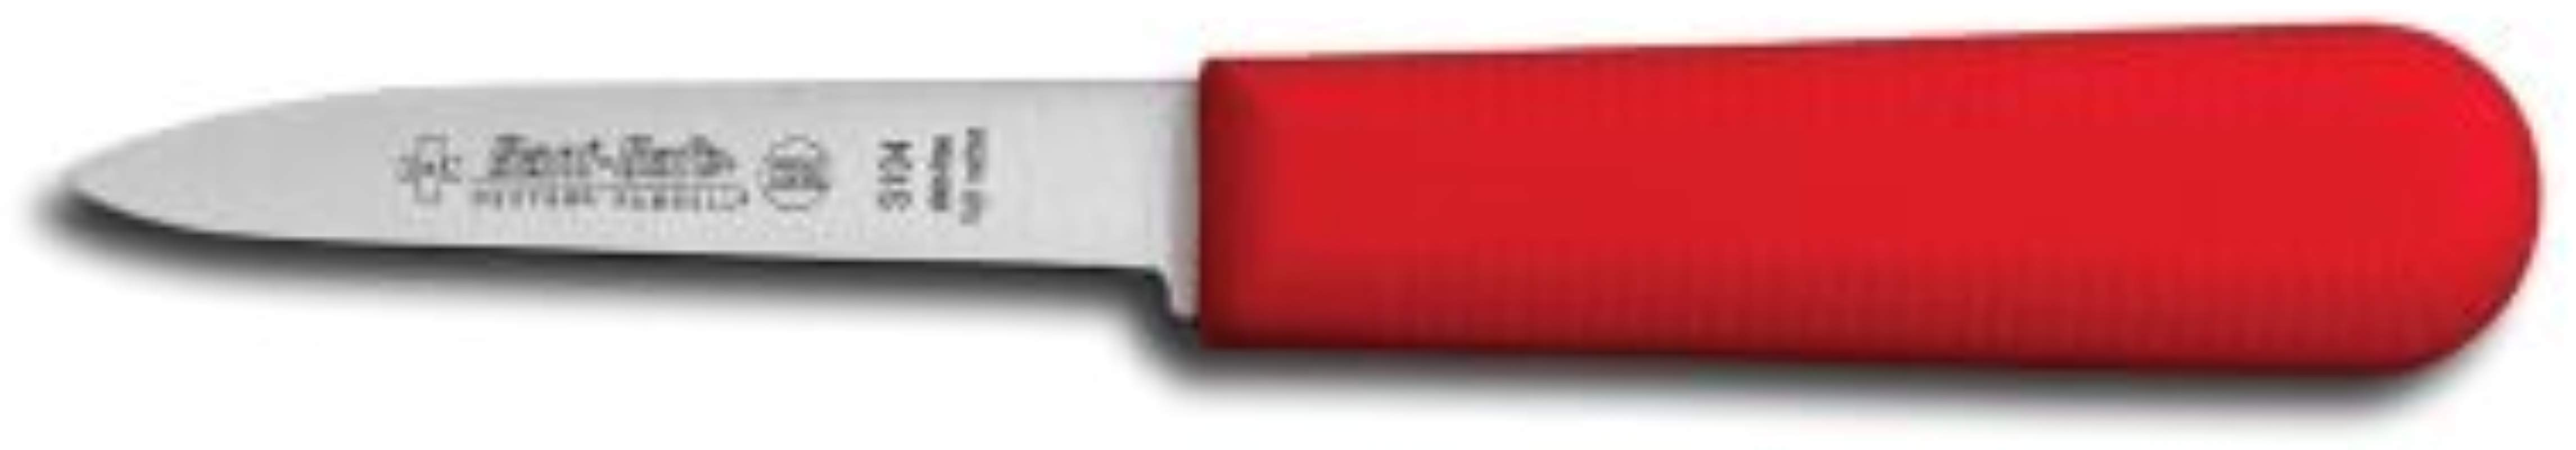 Dexter Russell Paring Knife Cook S Style Parer 3 1 2 Blade Red